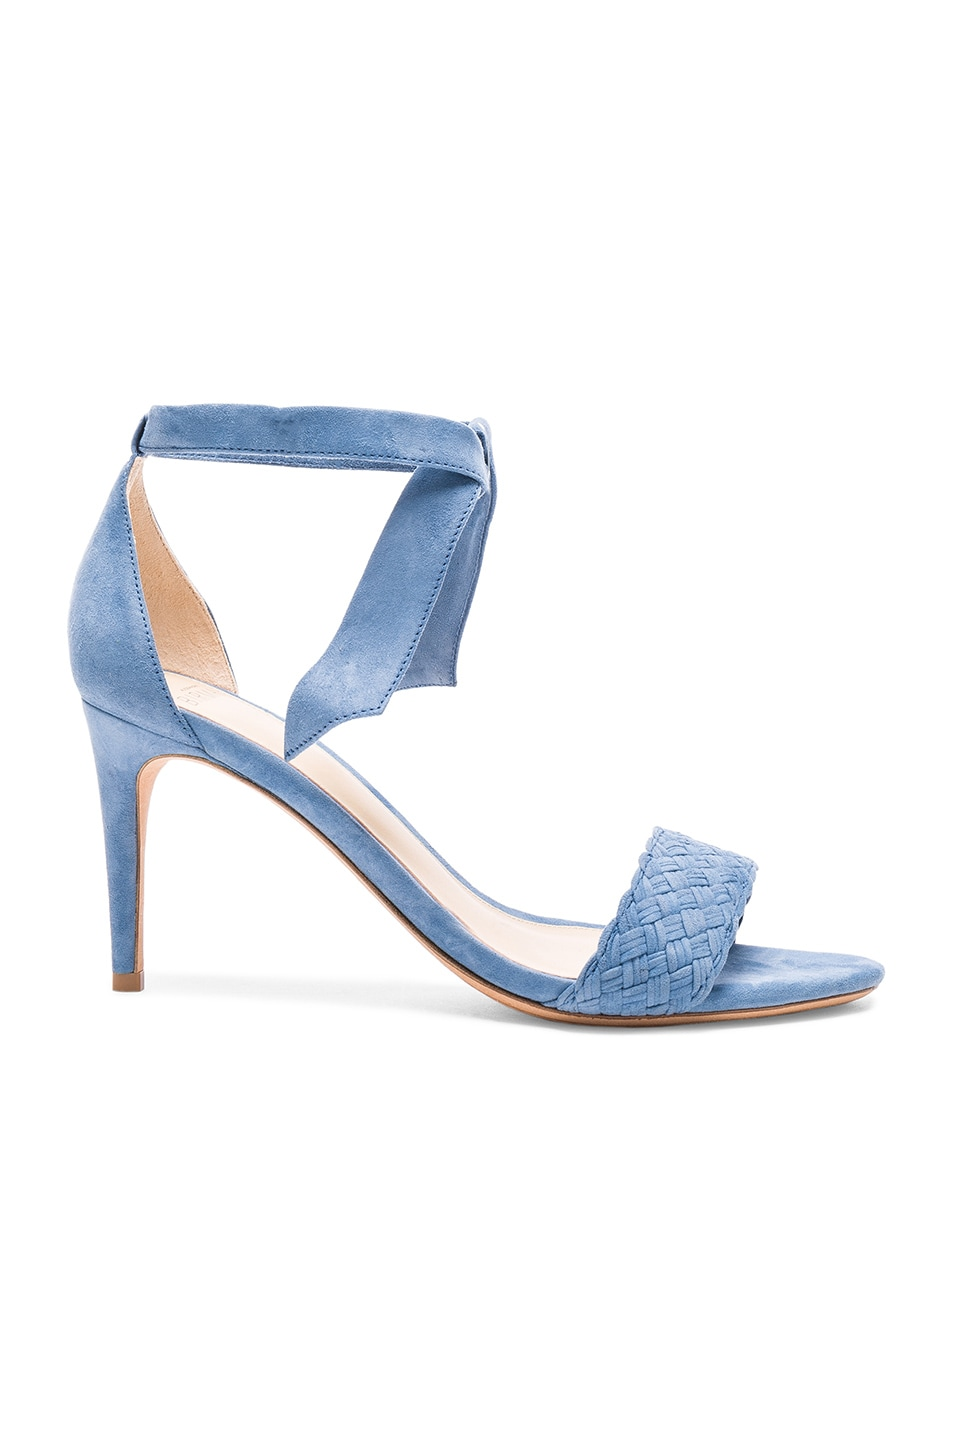 ALEXANDRE BIRMAN Suede Rosemarie Heels at FORWARD